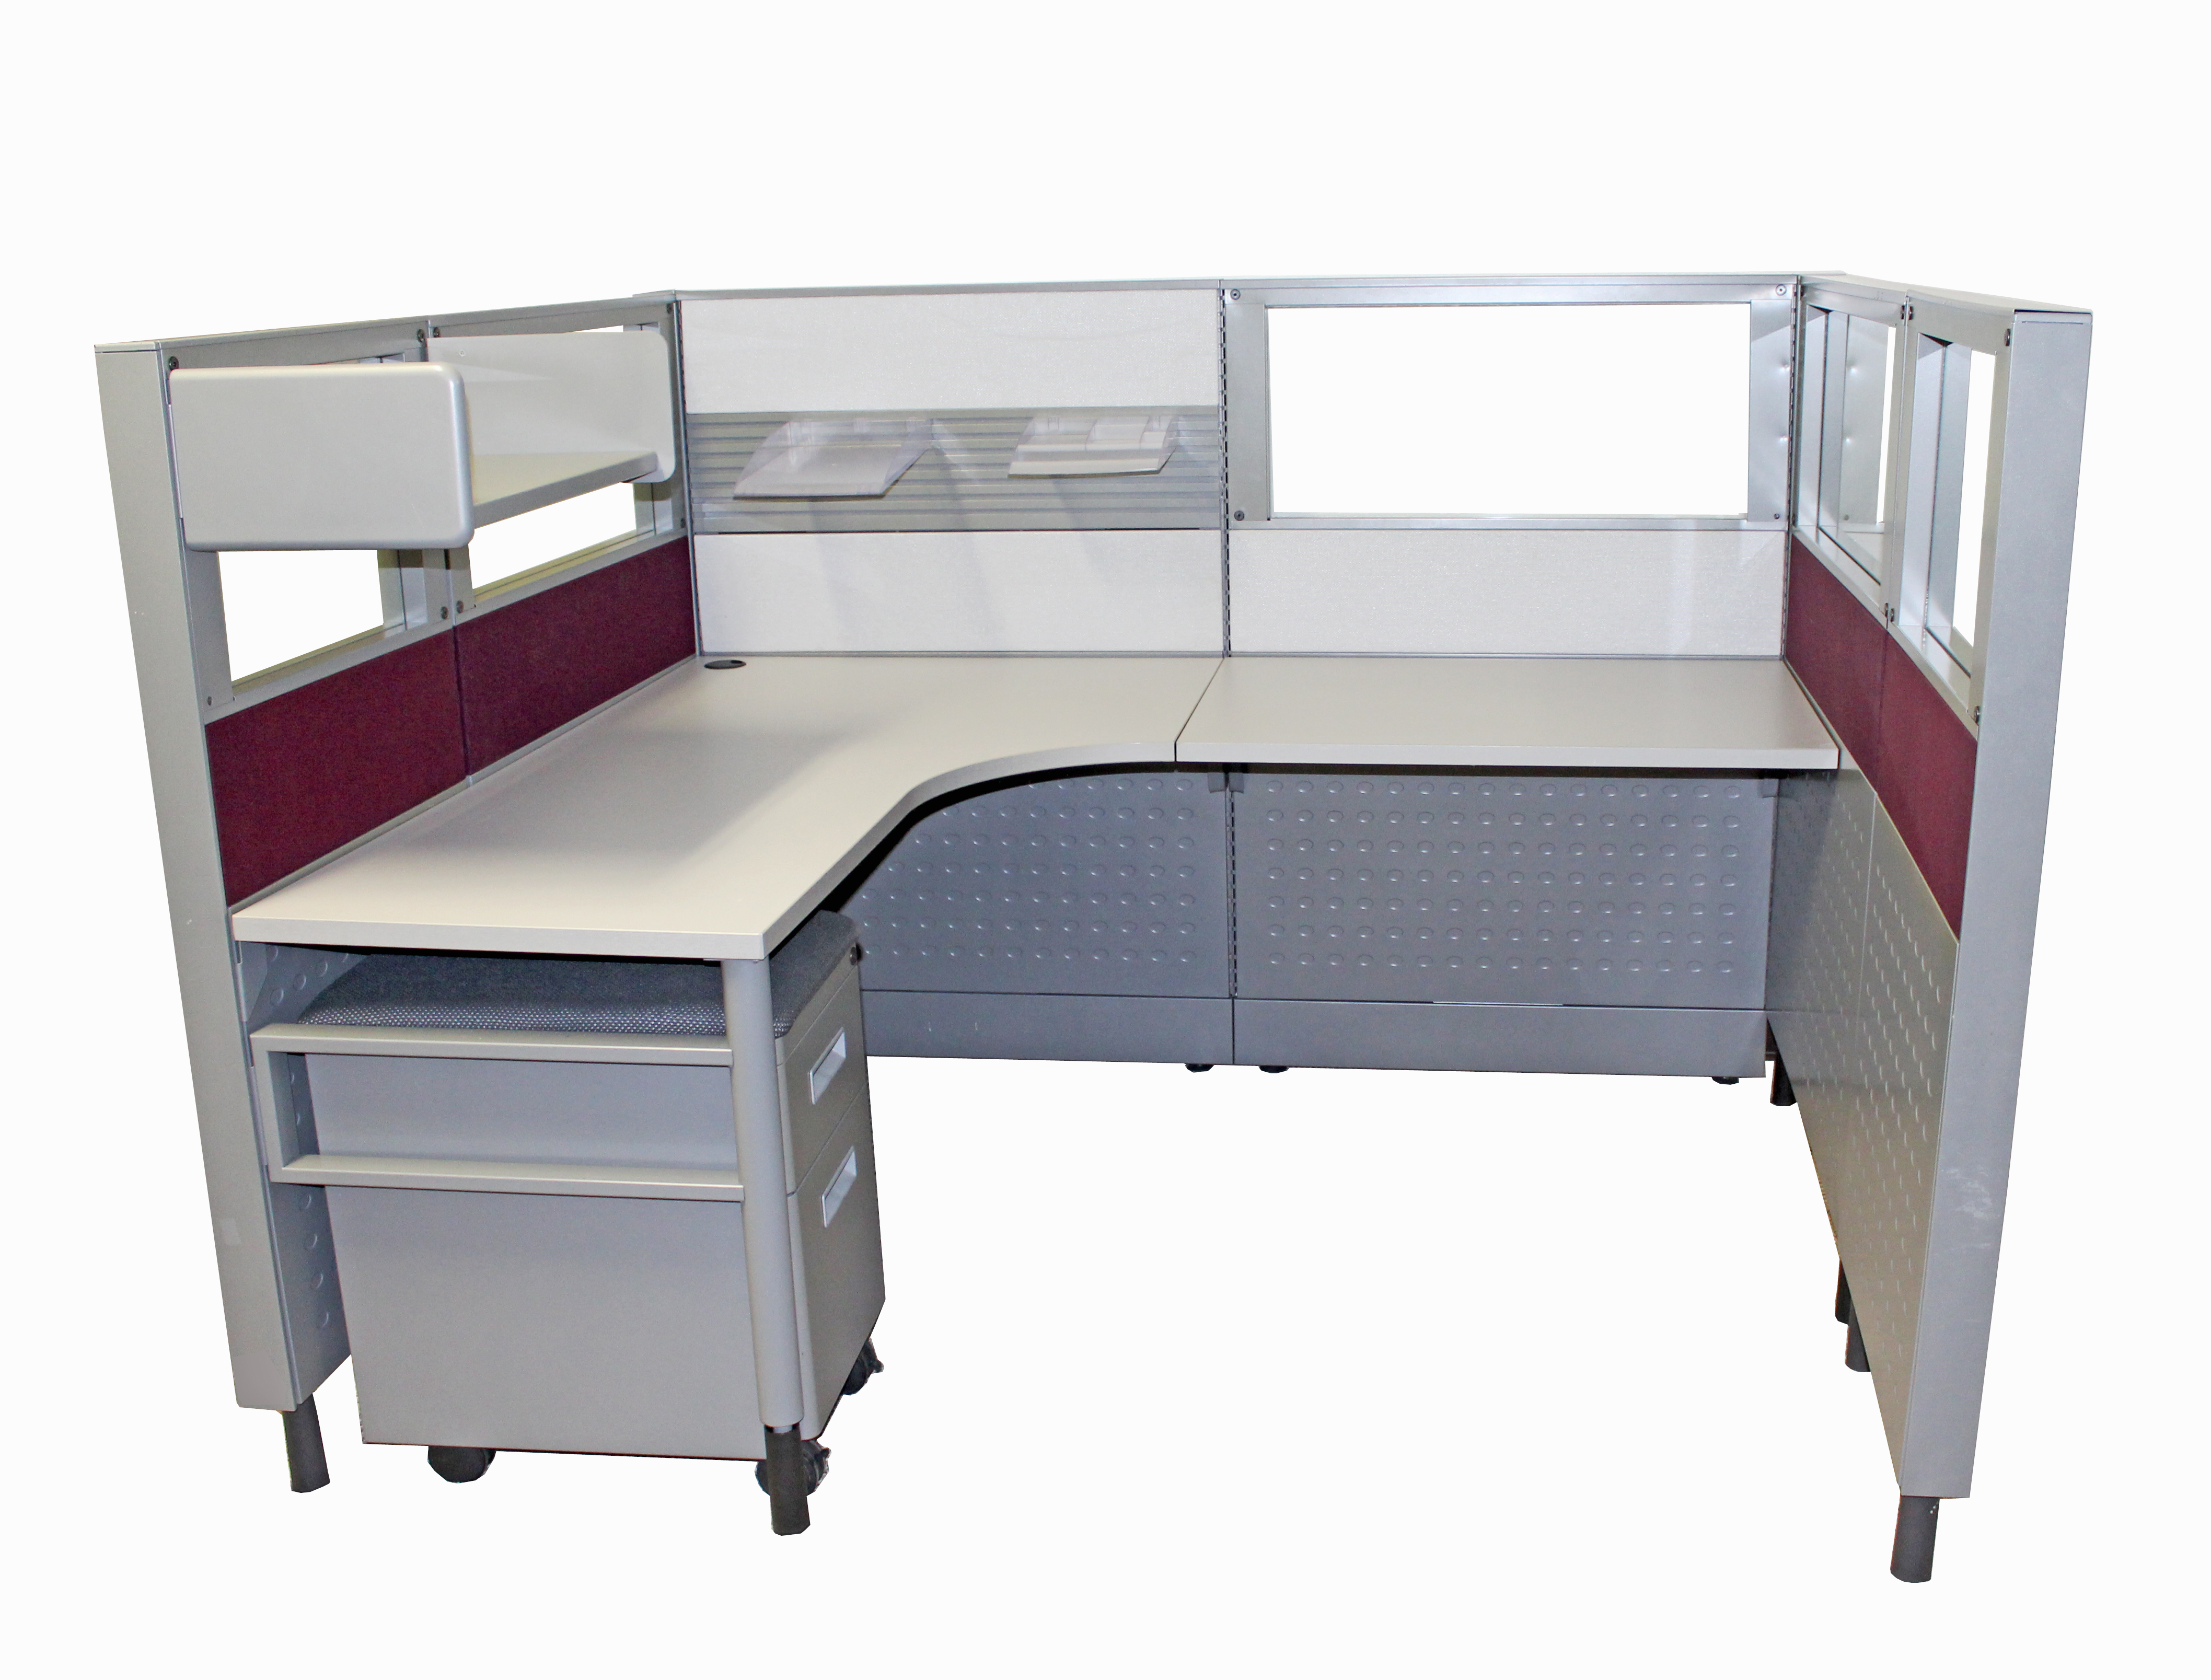 6 X5 53 Tremain Complete Used Cubicles With Glass